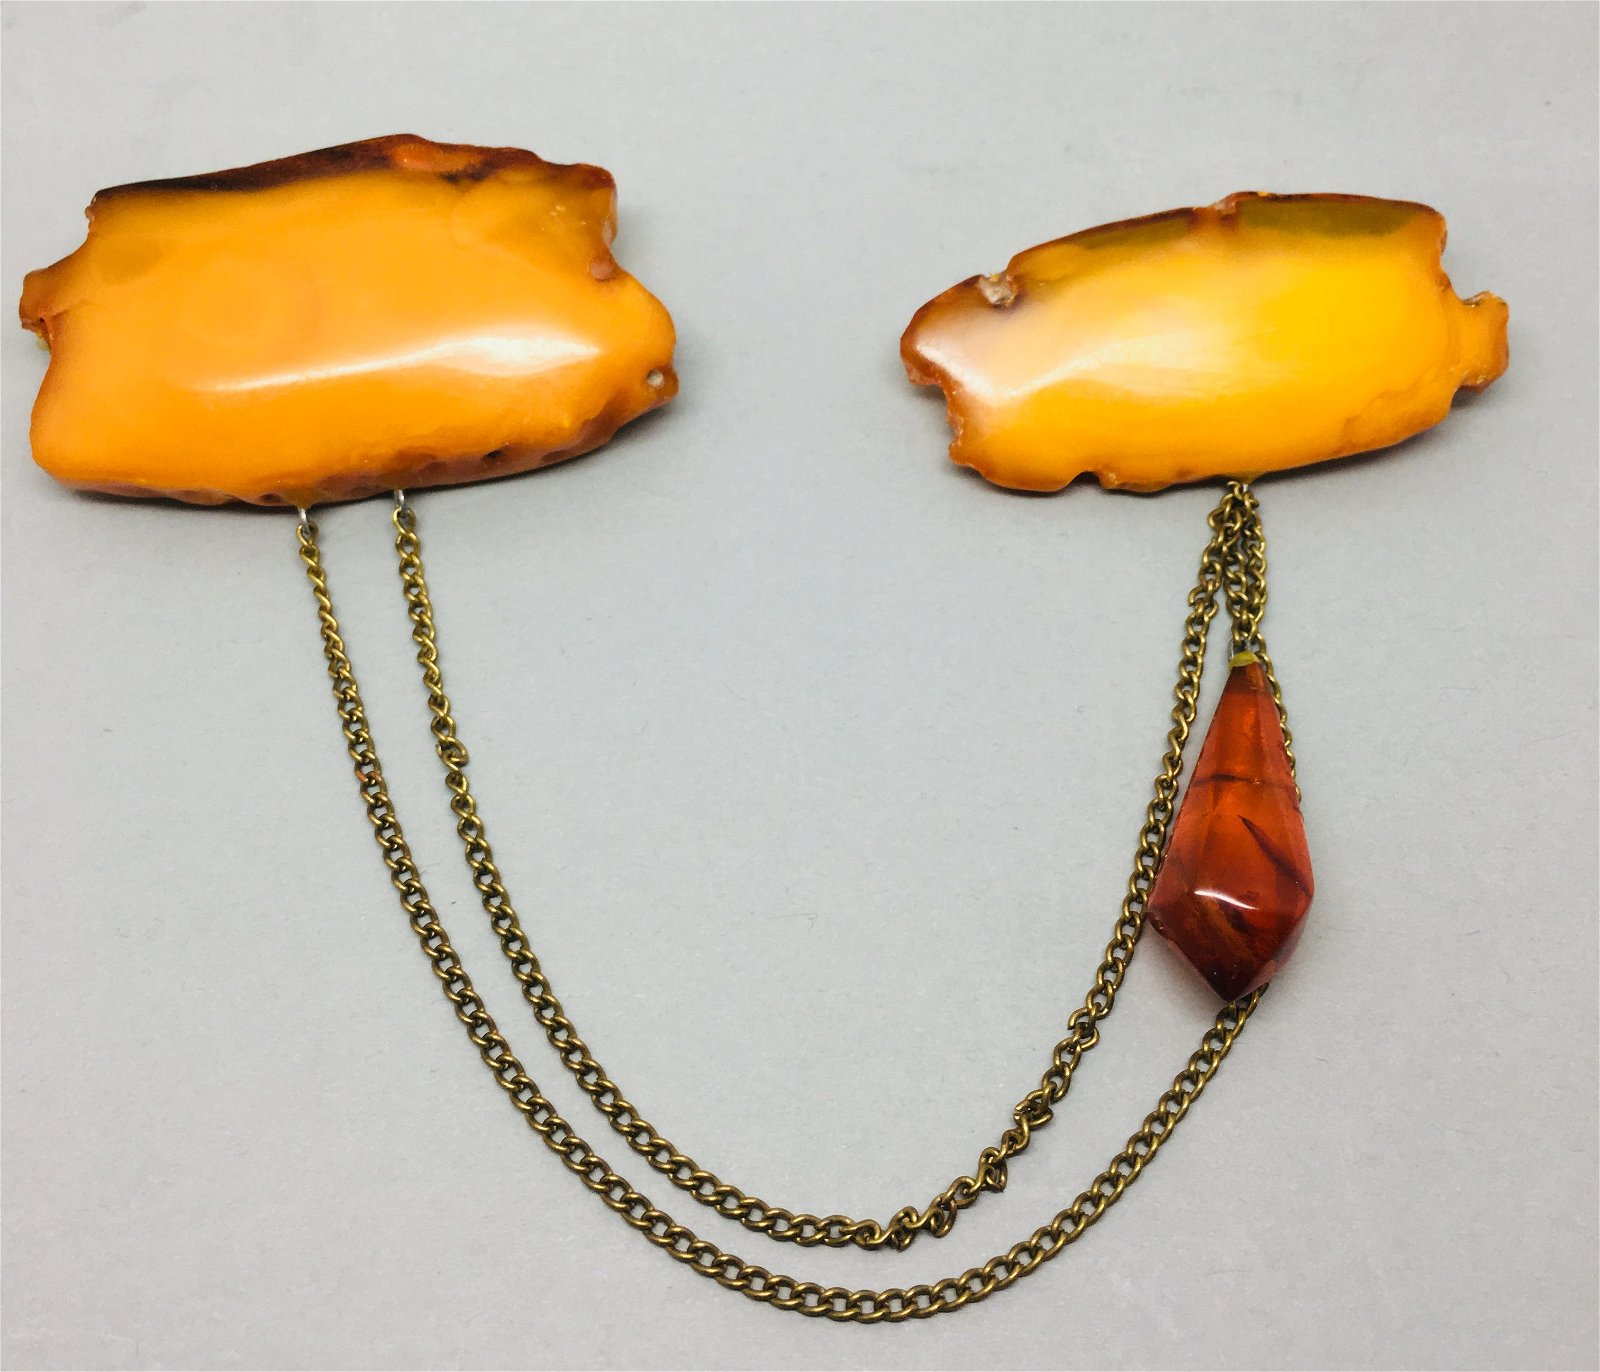 Vintage Amber Double Brooch with chain